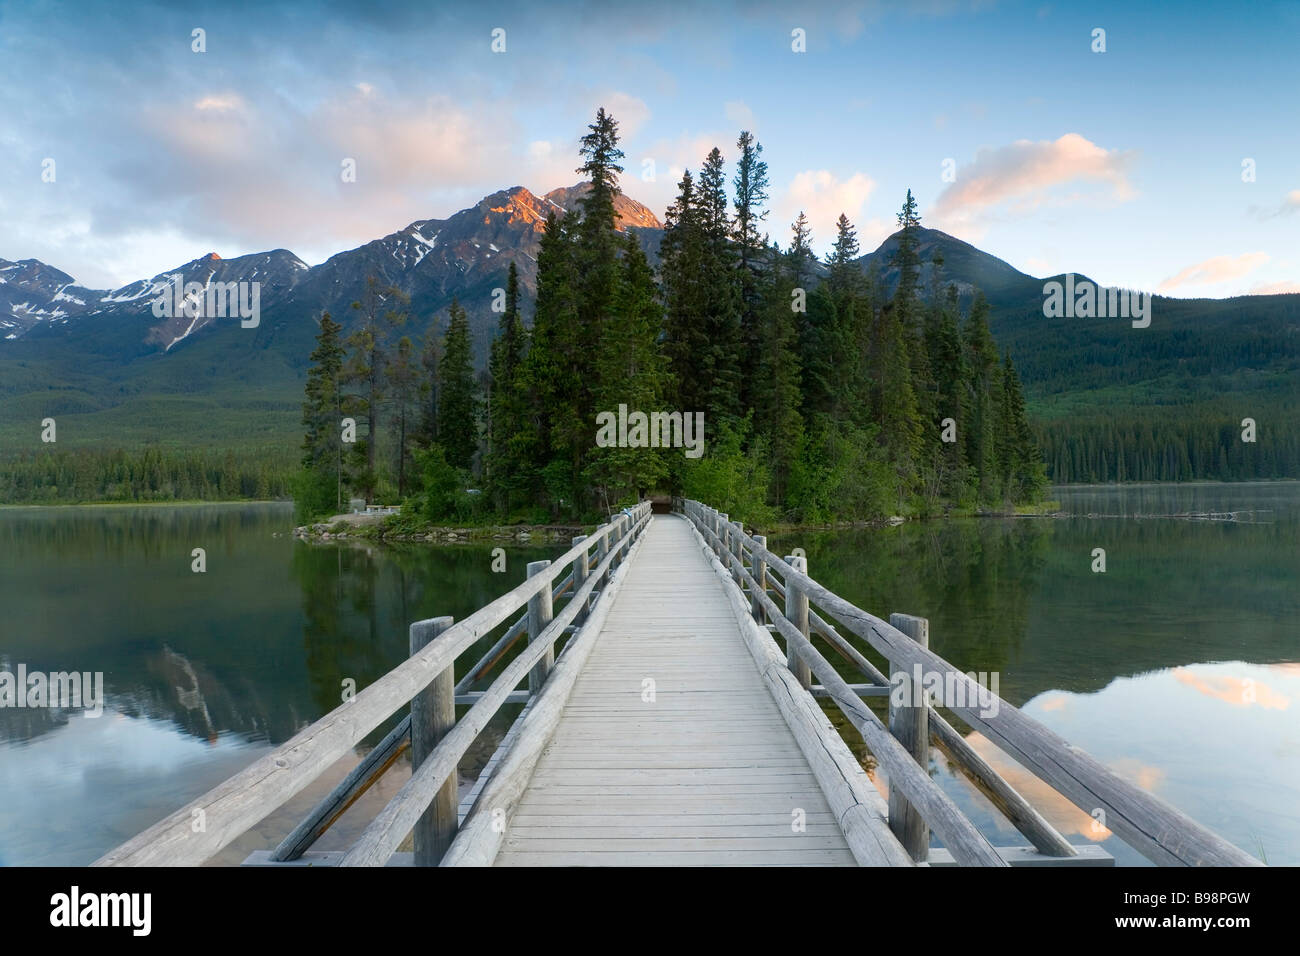 bridge Pyramid Lake, nr Jasper. Jasper National park, Alberta, Canada - Stock Image